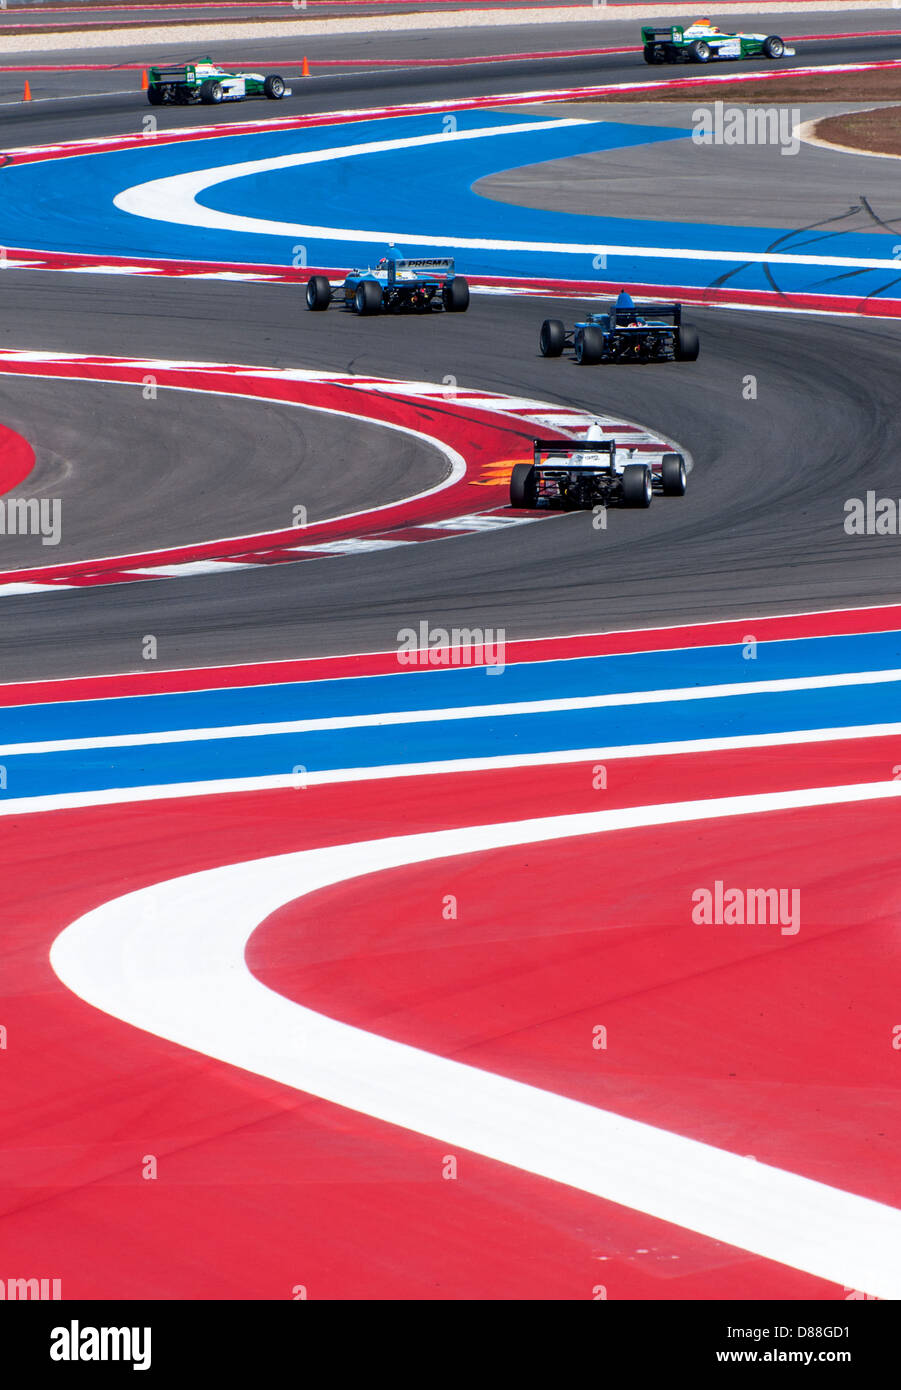 Several Pro Mazda Series racing cars negotiate the S-curves at Circuit of the Americas, Austin, Texas. - Stock Image